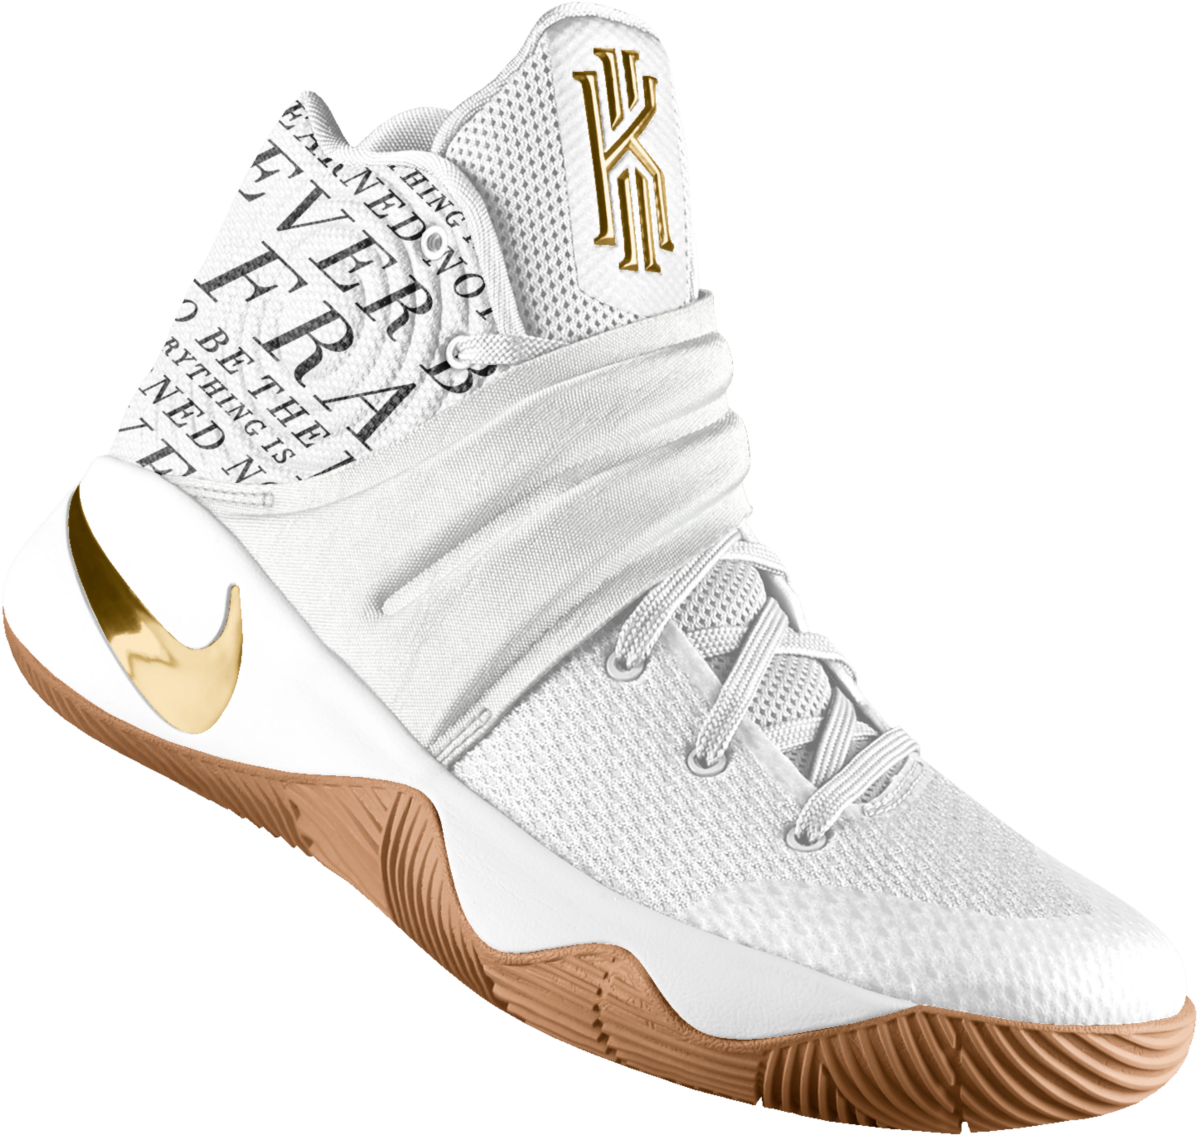 Download Kyrie 2 Id Basketball Shoe - Kyrie Irving Basketball Shoes White  And Gold PNG Image with No Background - PNGkey.com